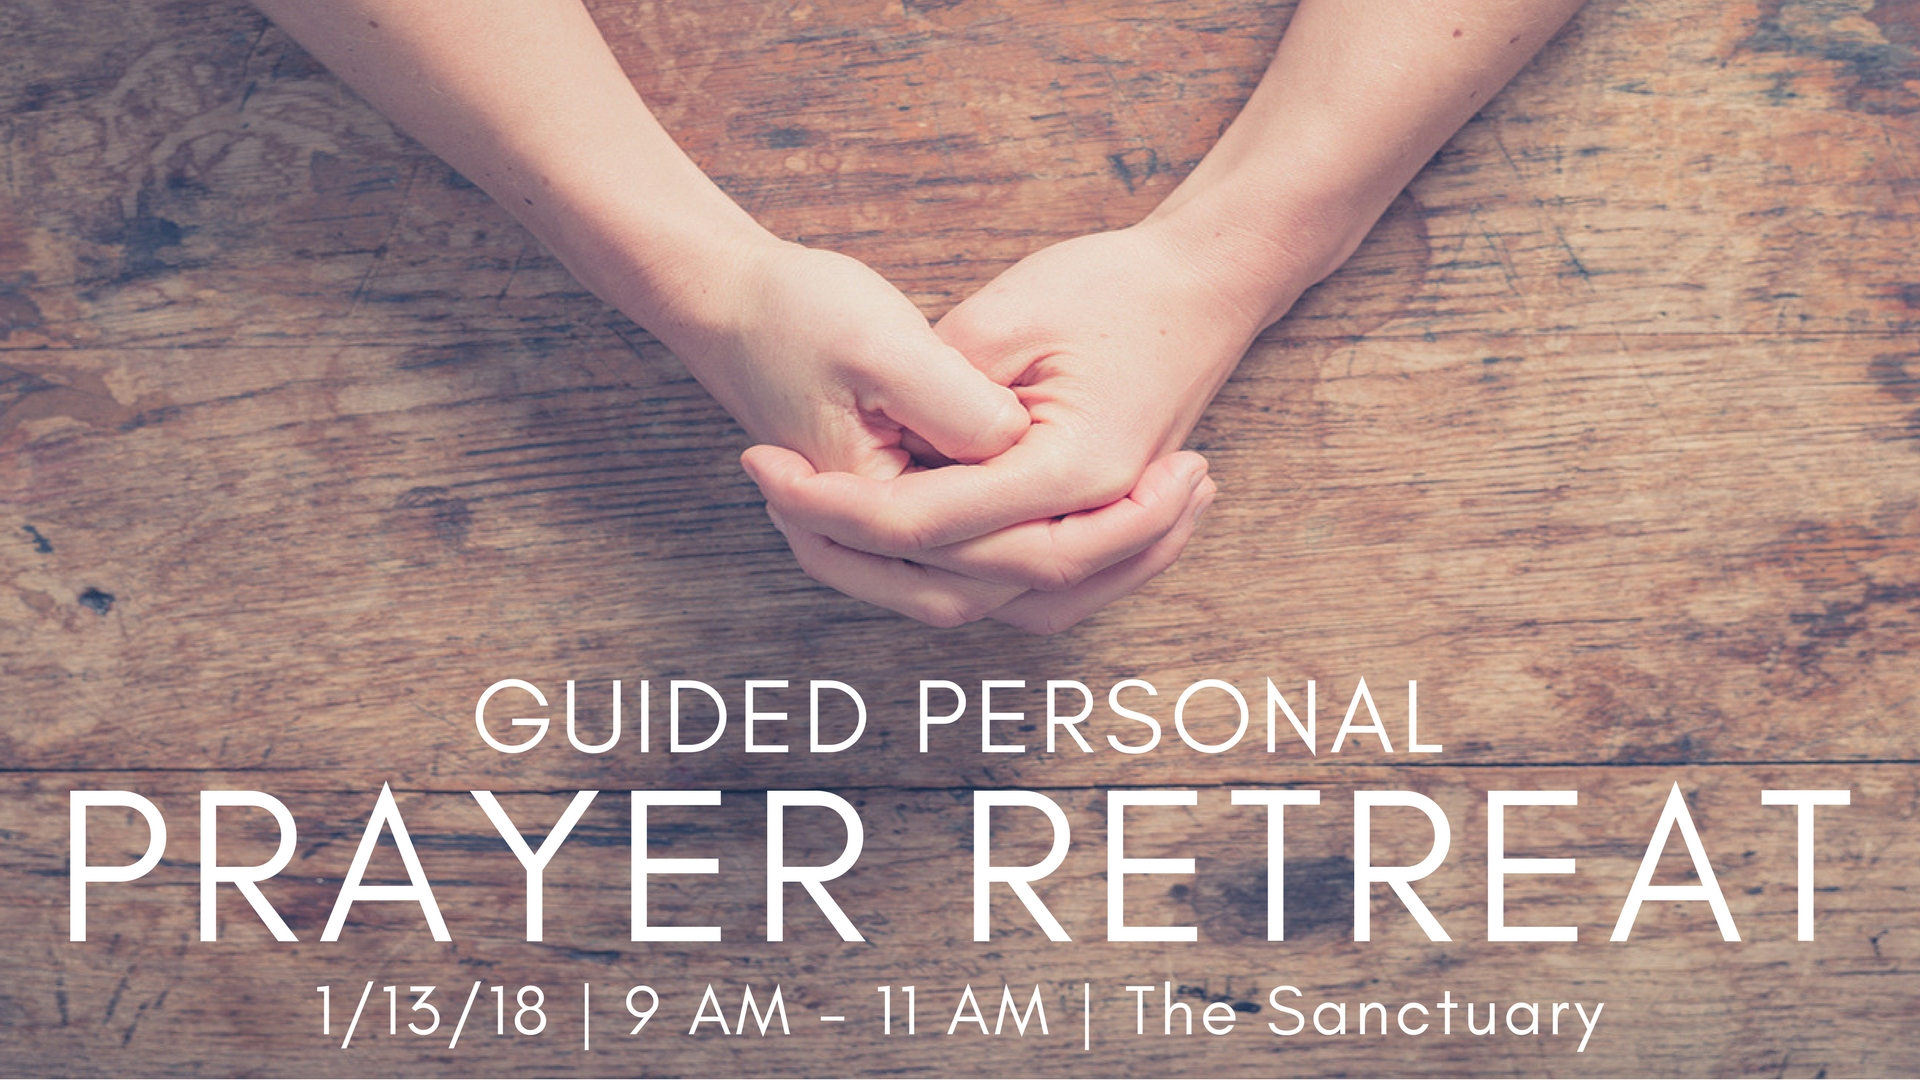 Guided Personal Prayer Retreat.jpg